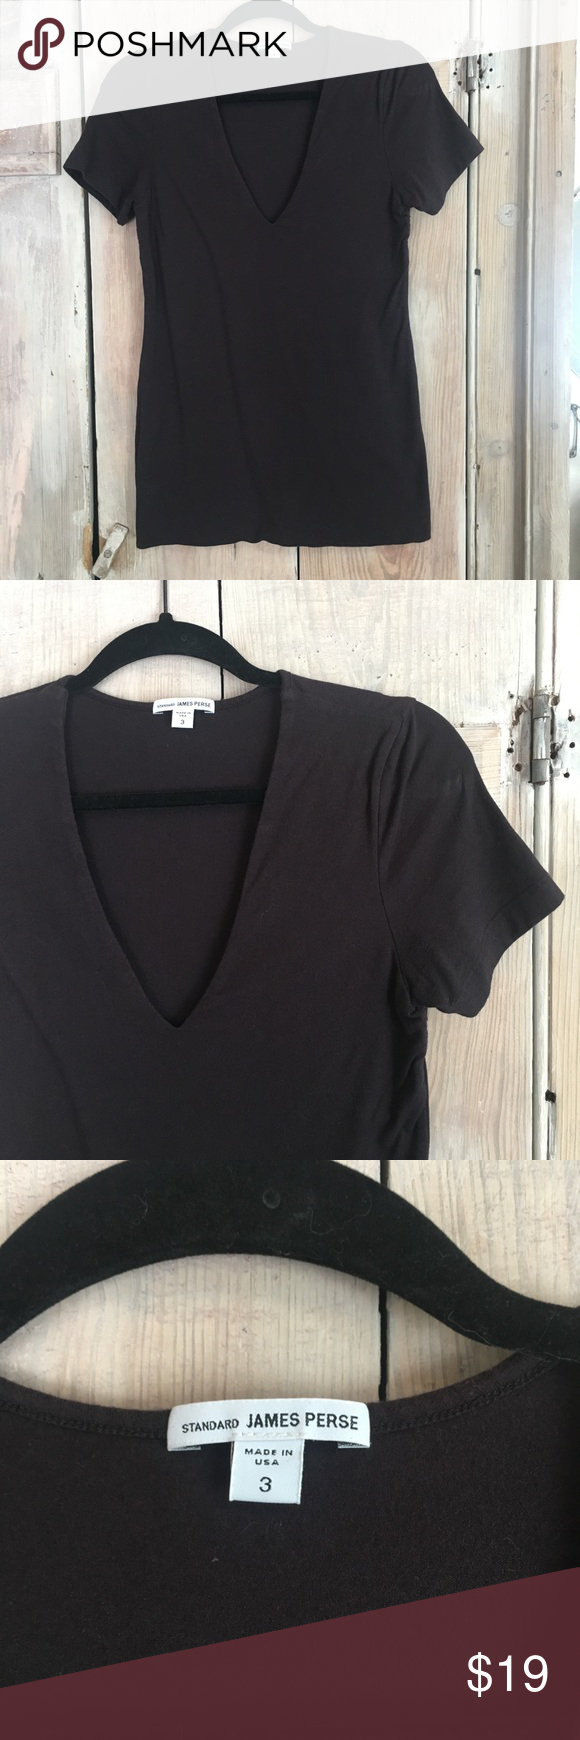 Standard James Perse Soft Cotton V Neck Tee Sz L This So Soft Top